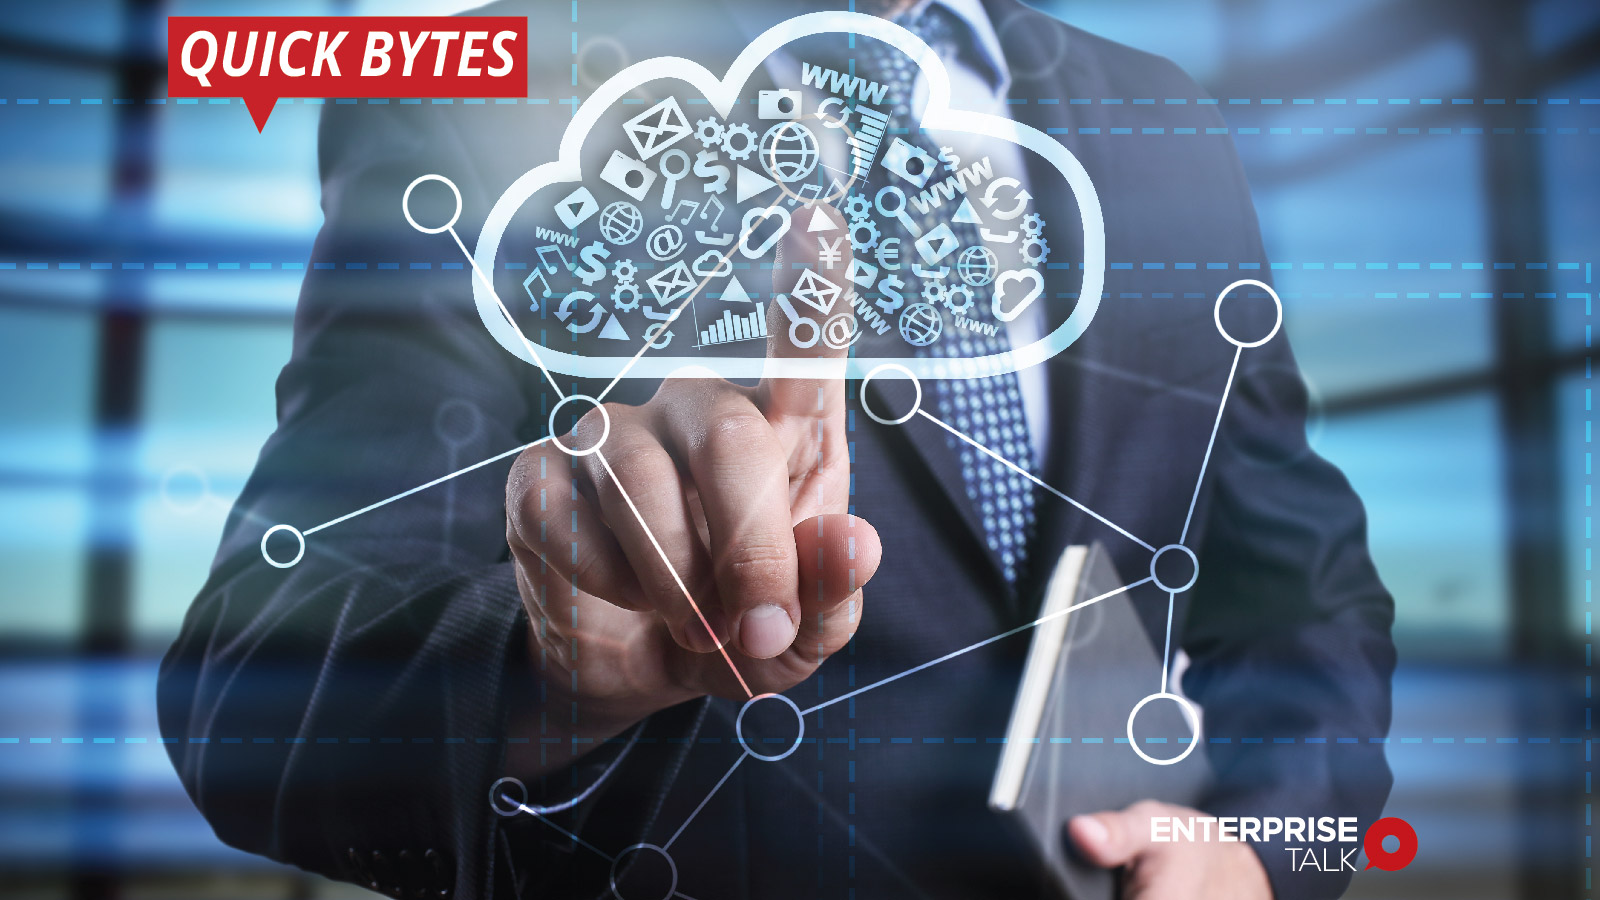 Oracle, VMware, cloud technology